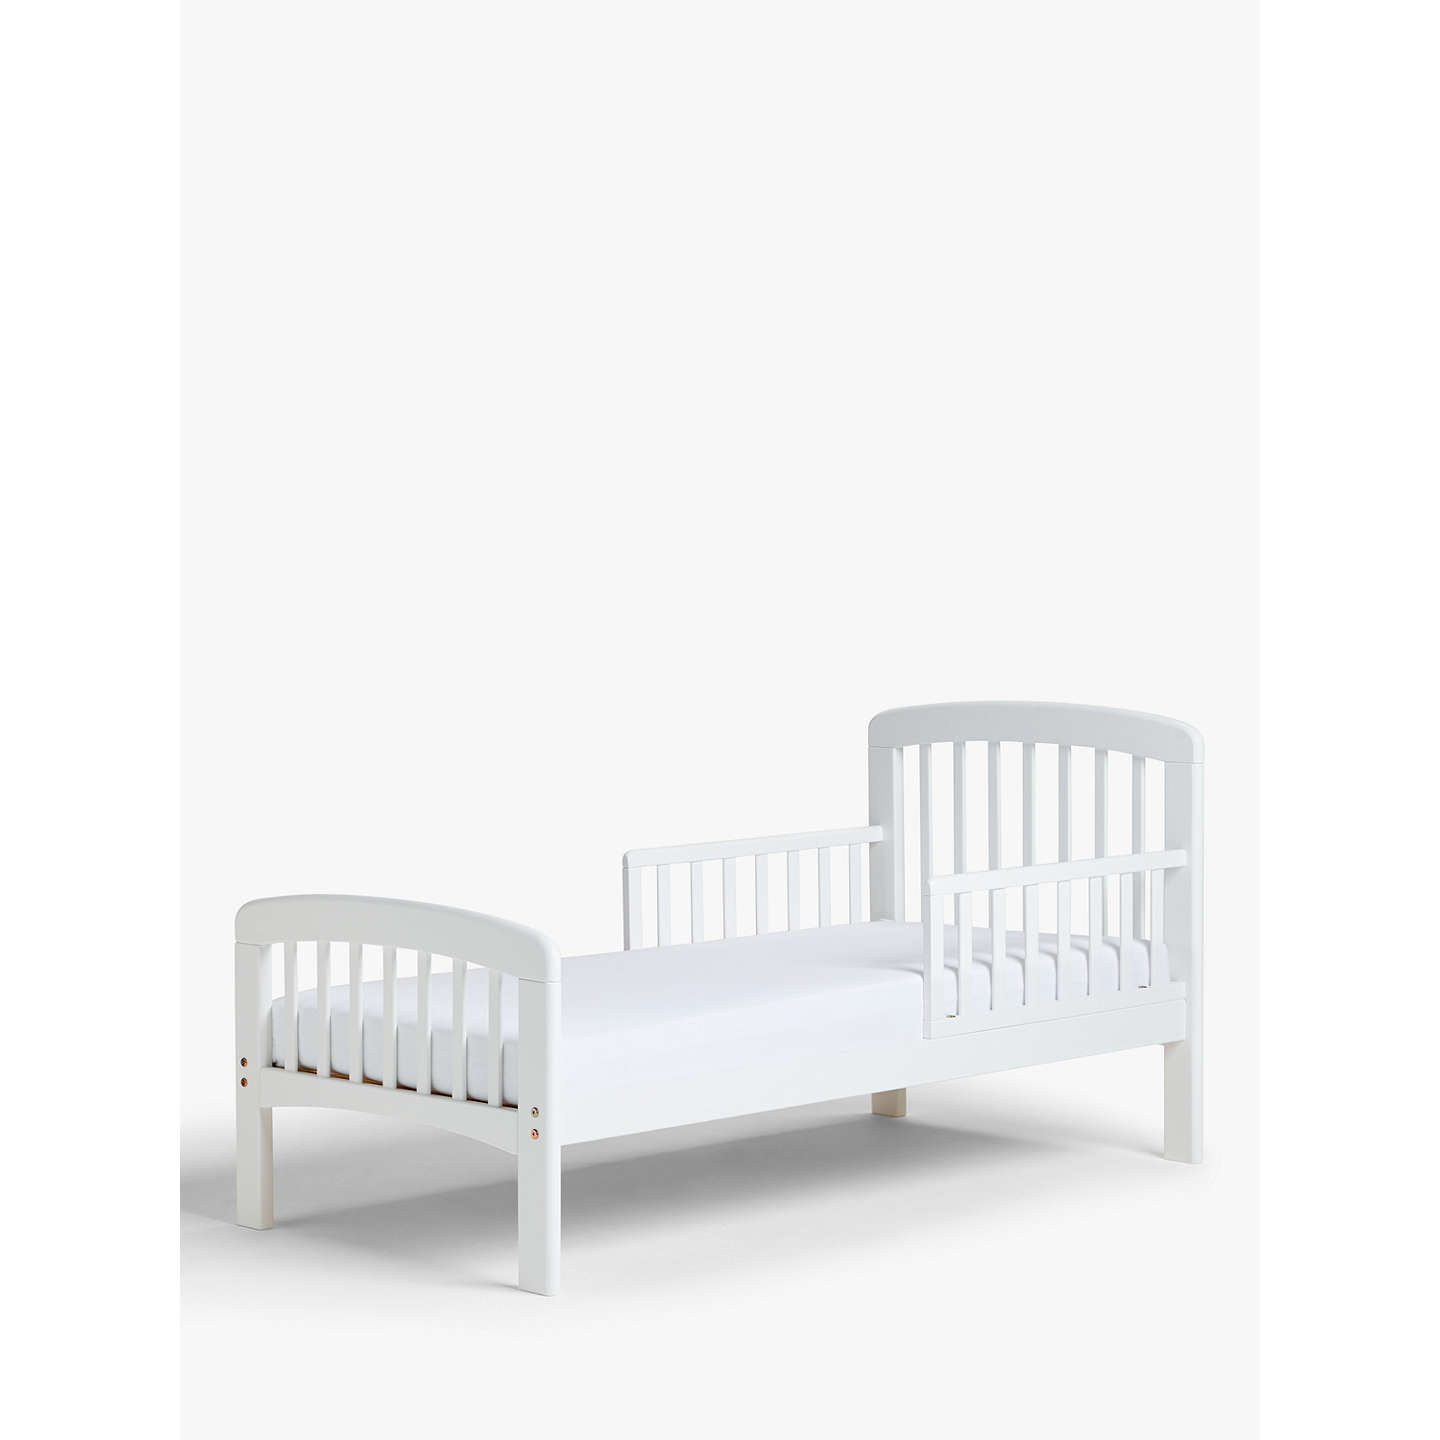 little ivy image hill eng beds bed monarch products seeds metal toddler bedroom